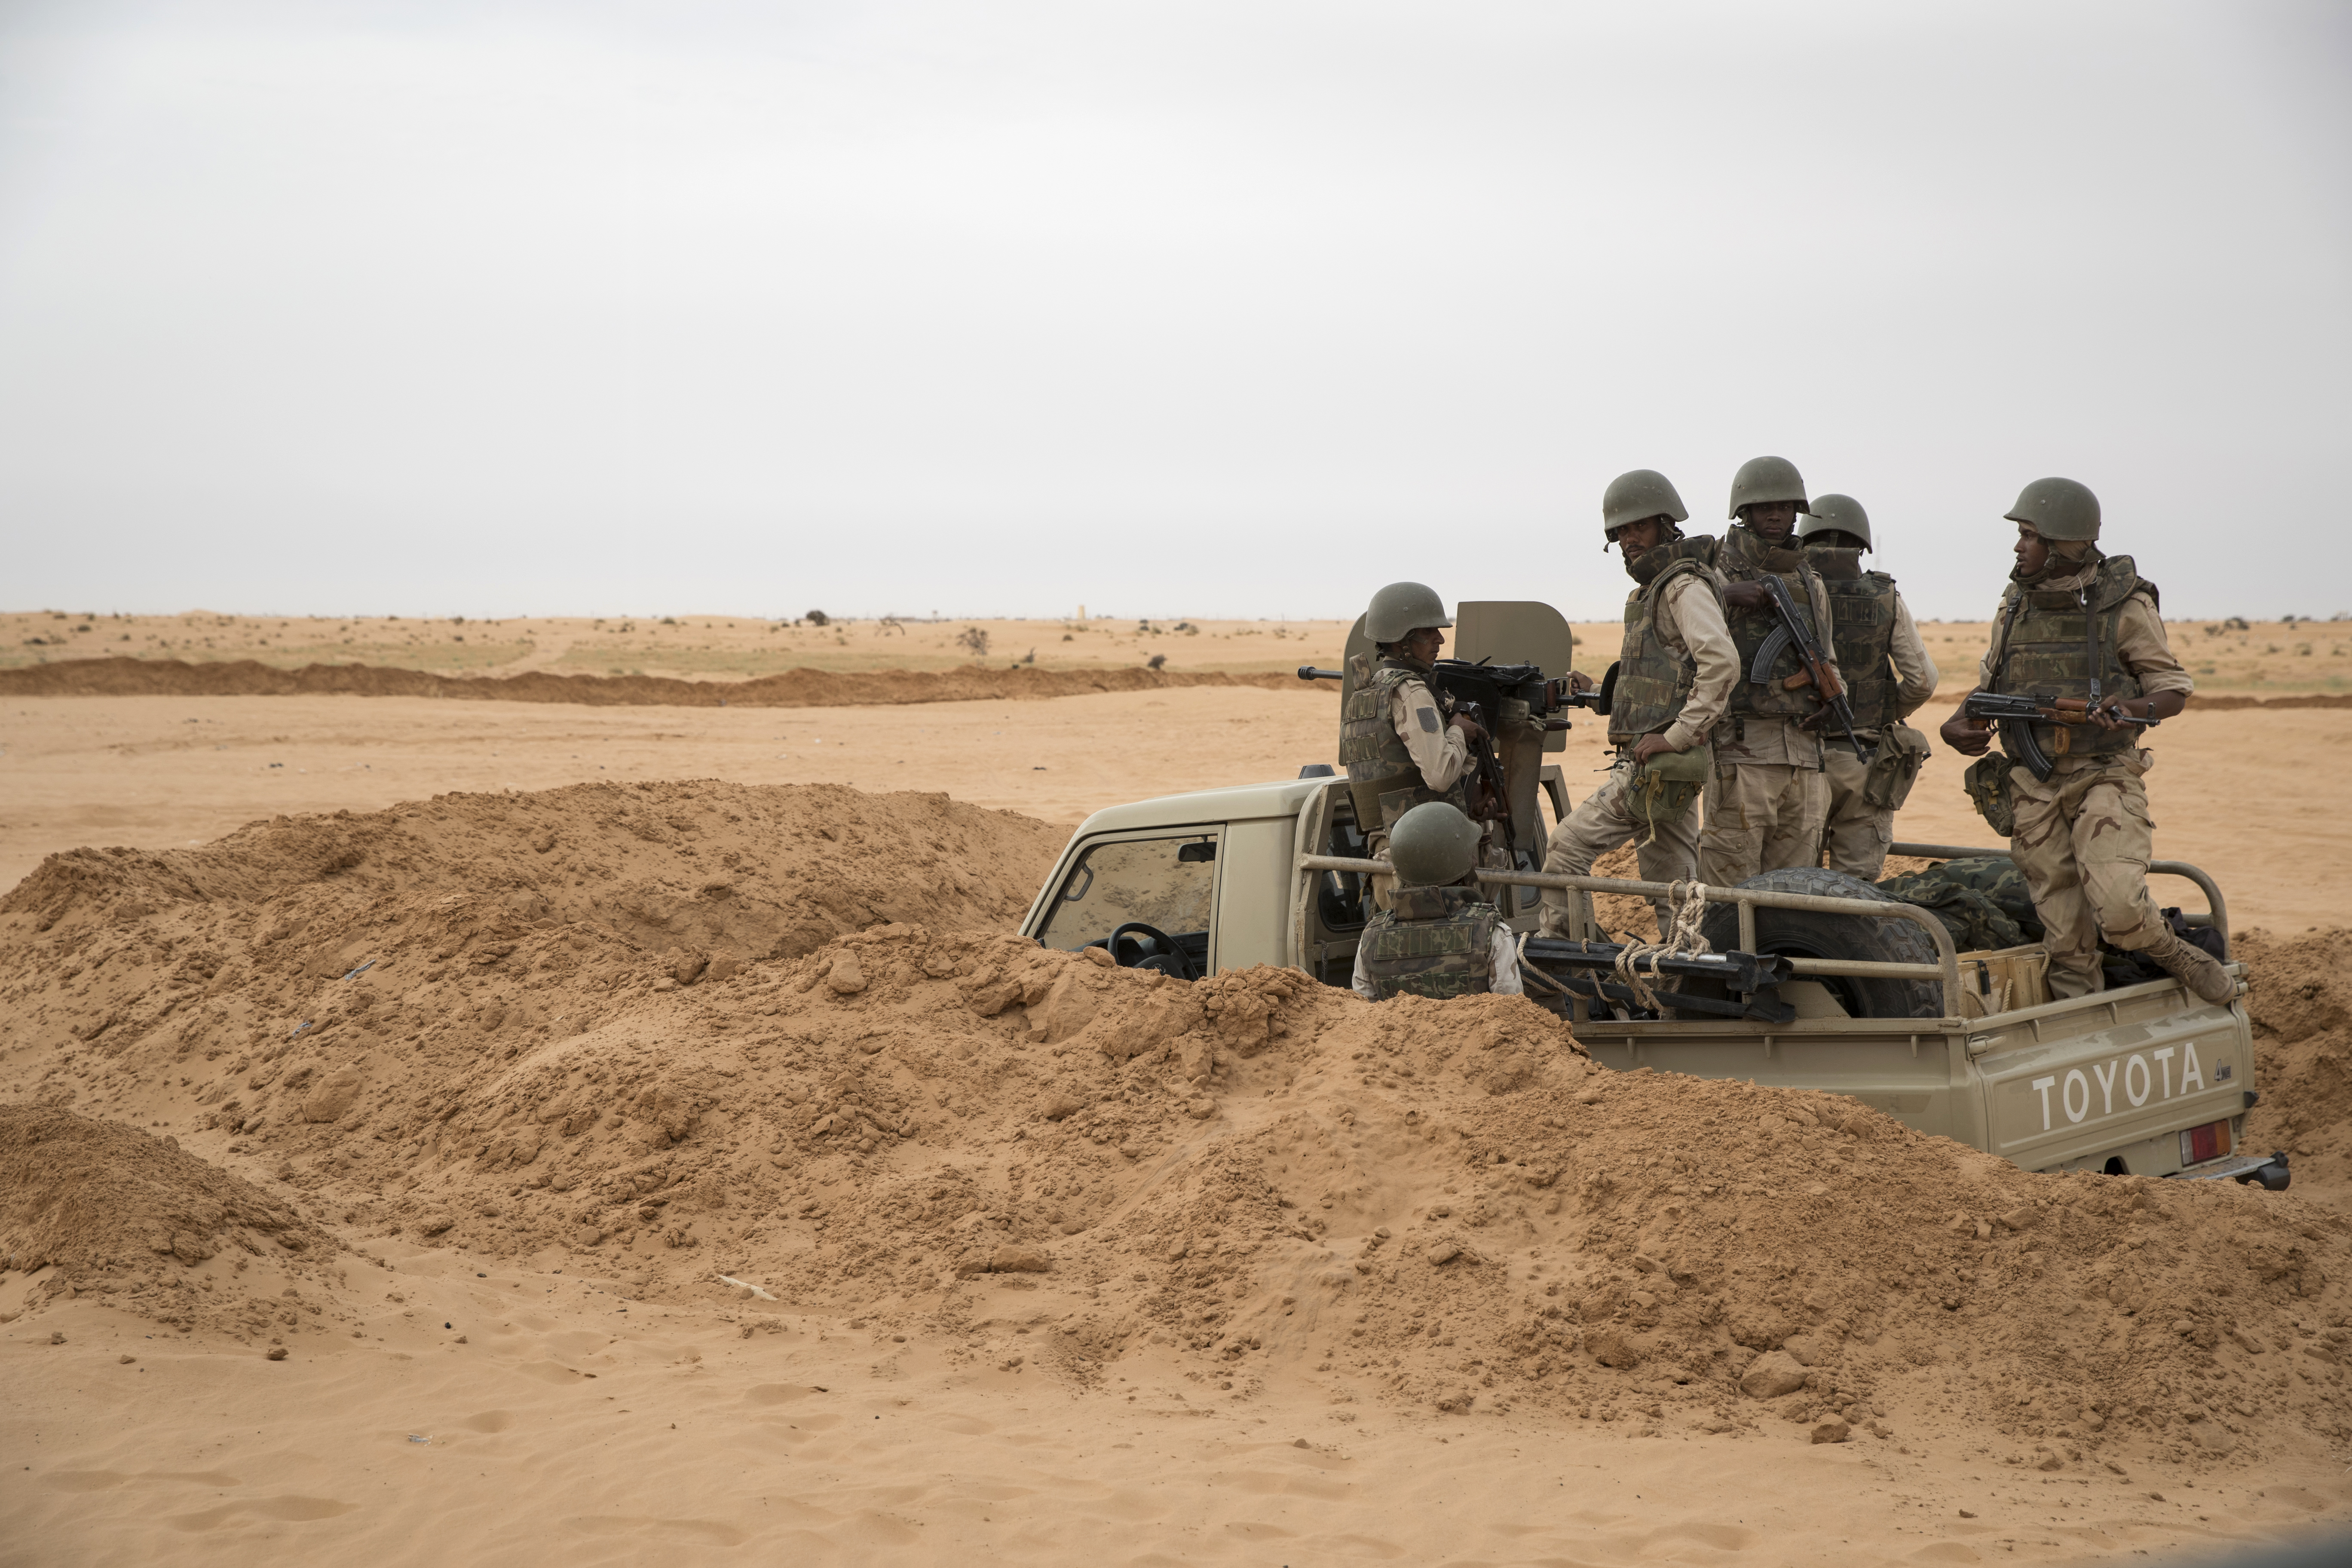 FILE - Soldiers of the Mauritania Army wait in an armed vehicle at a G5 Sahel task force outpost in the southeast of Mauritania, along the border with Mali, Nov. 22, 2018.